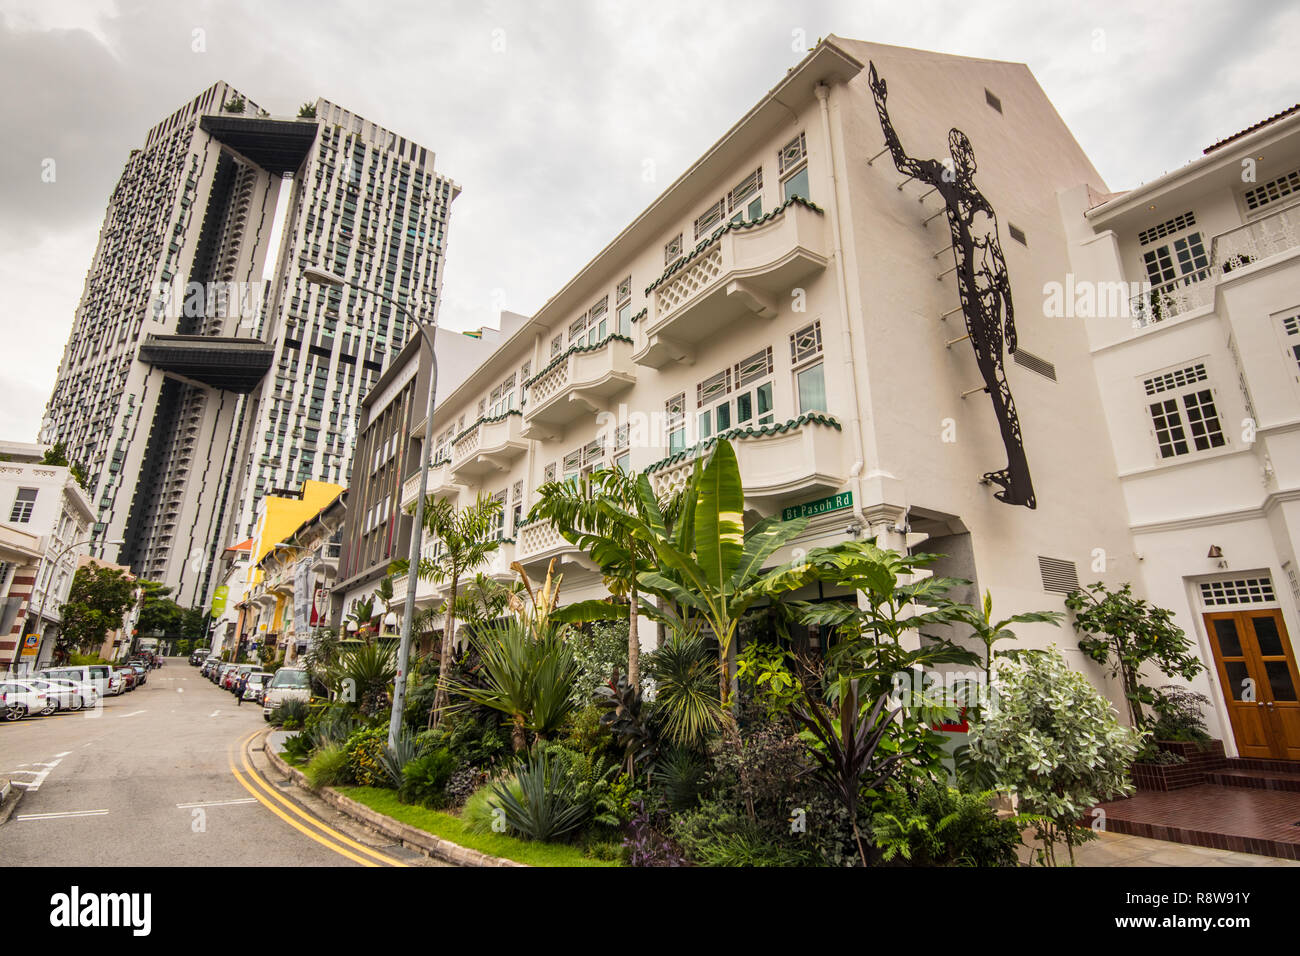 Traditional buildings on Bukit Pasoh Road, Outram Park, Singapore Stock Photo